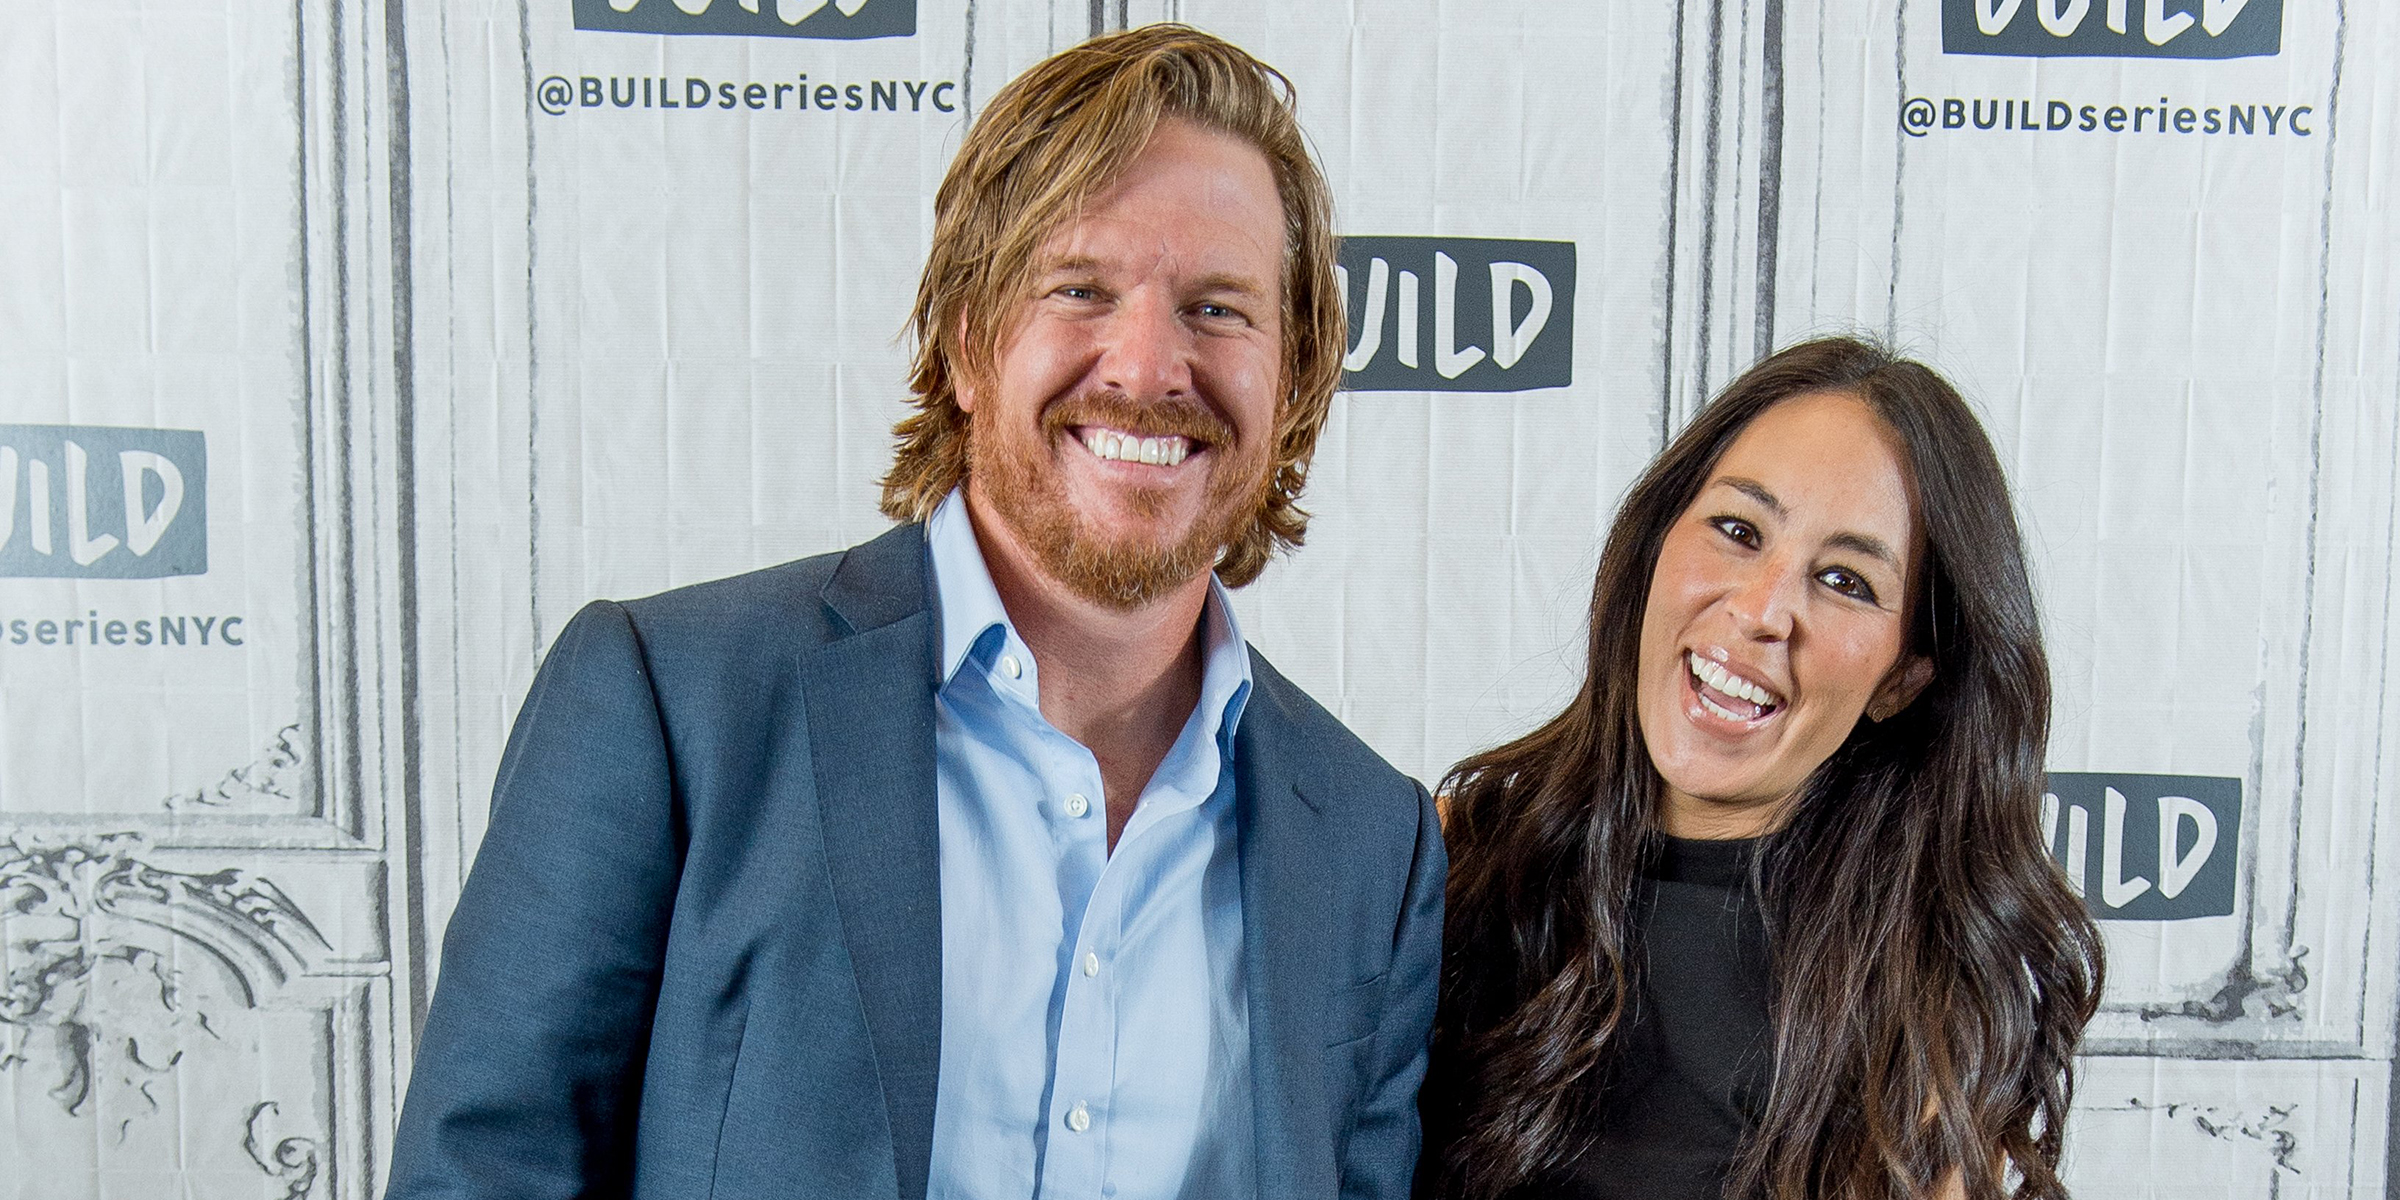 Chip and Joanna Gaines announce 1st original series on their new TV network